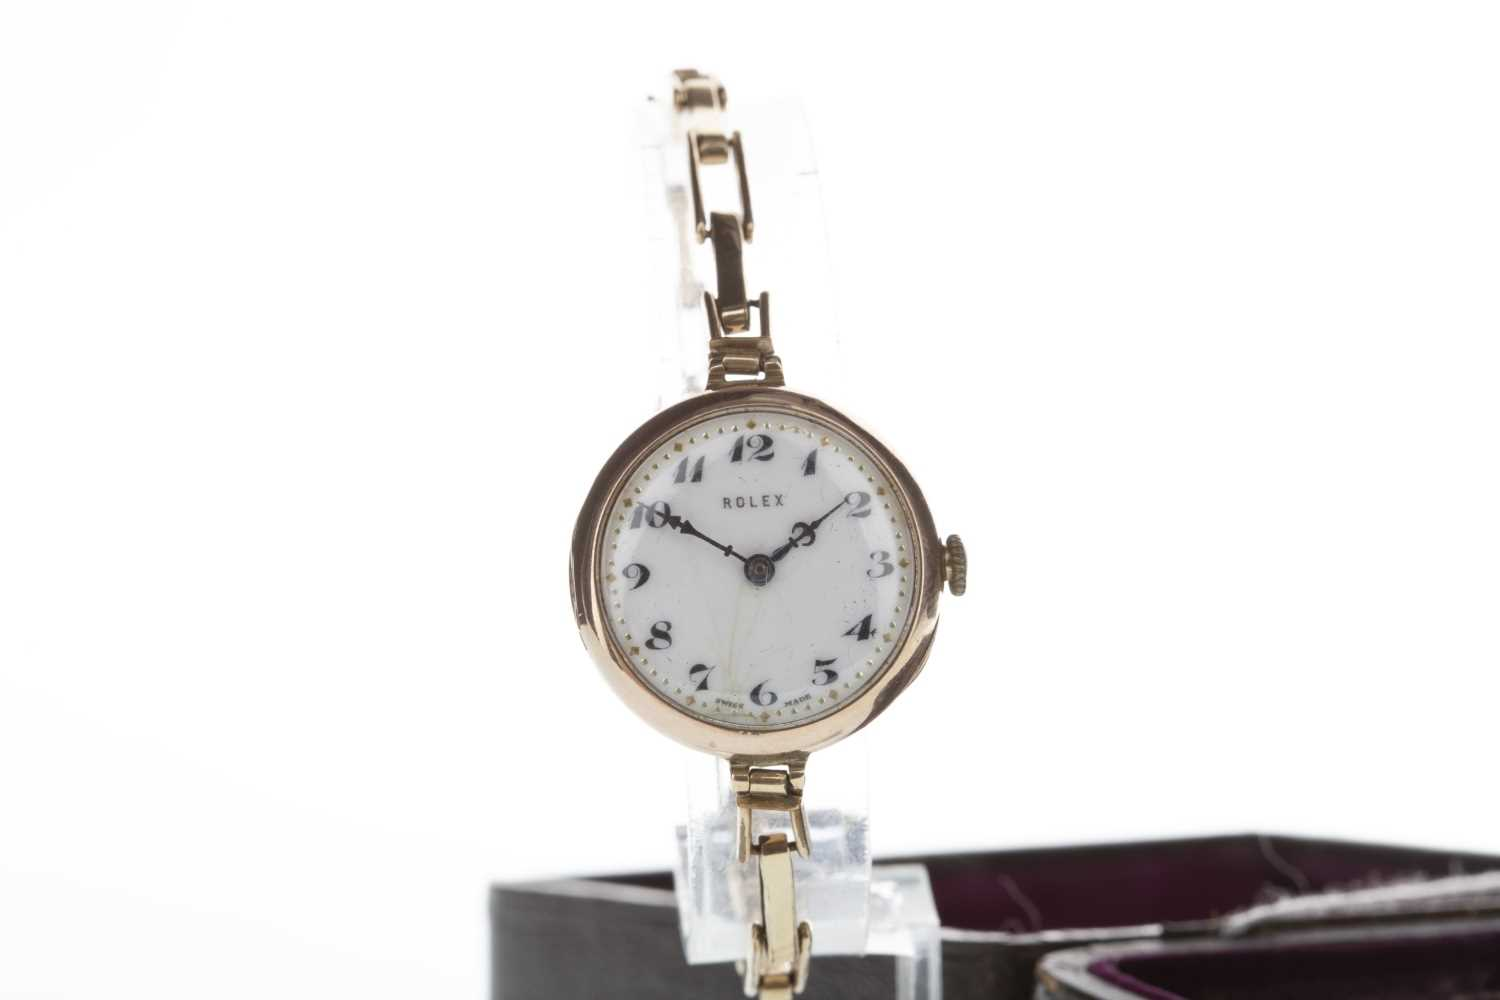 Lot 758-A LADY'S ROLEX EARLY TWENTIETH CENTURY WATCH